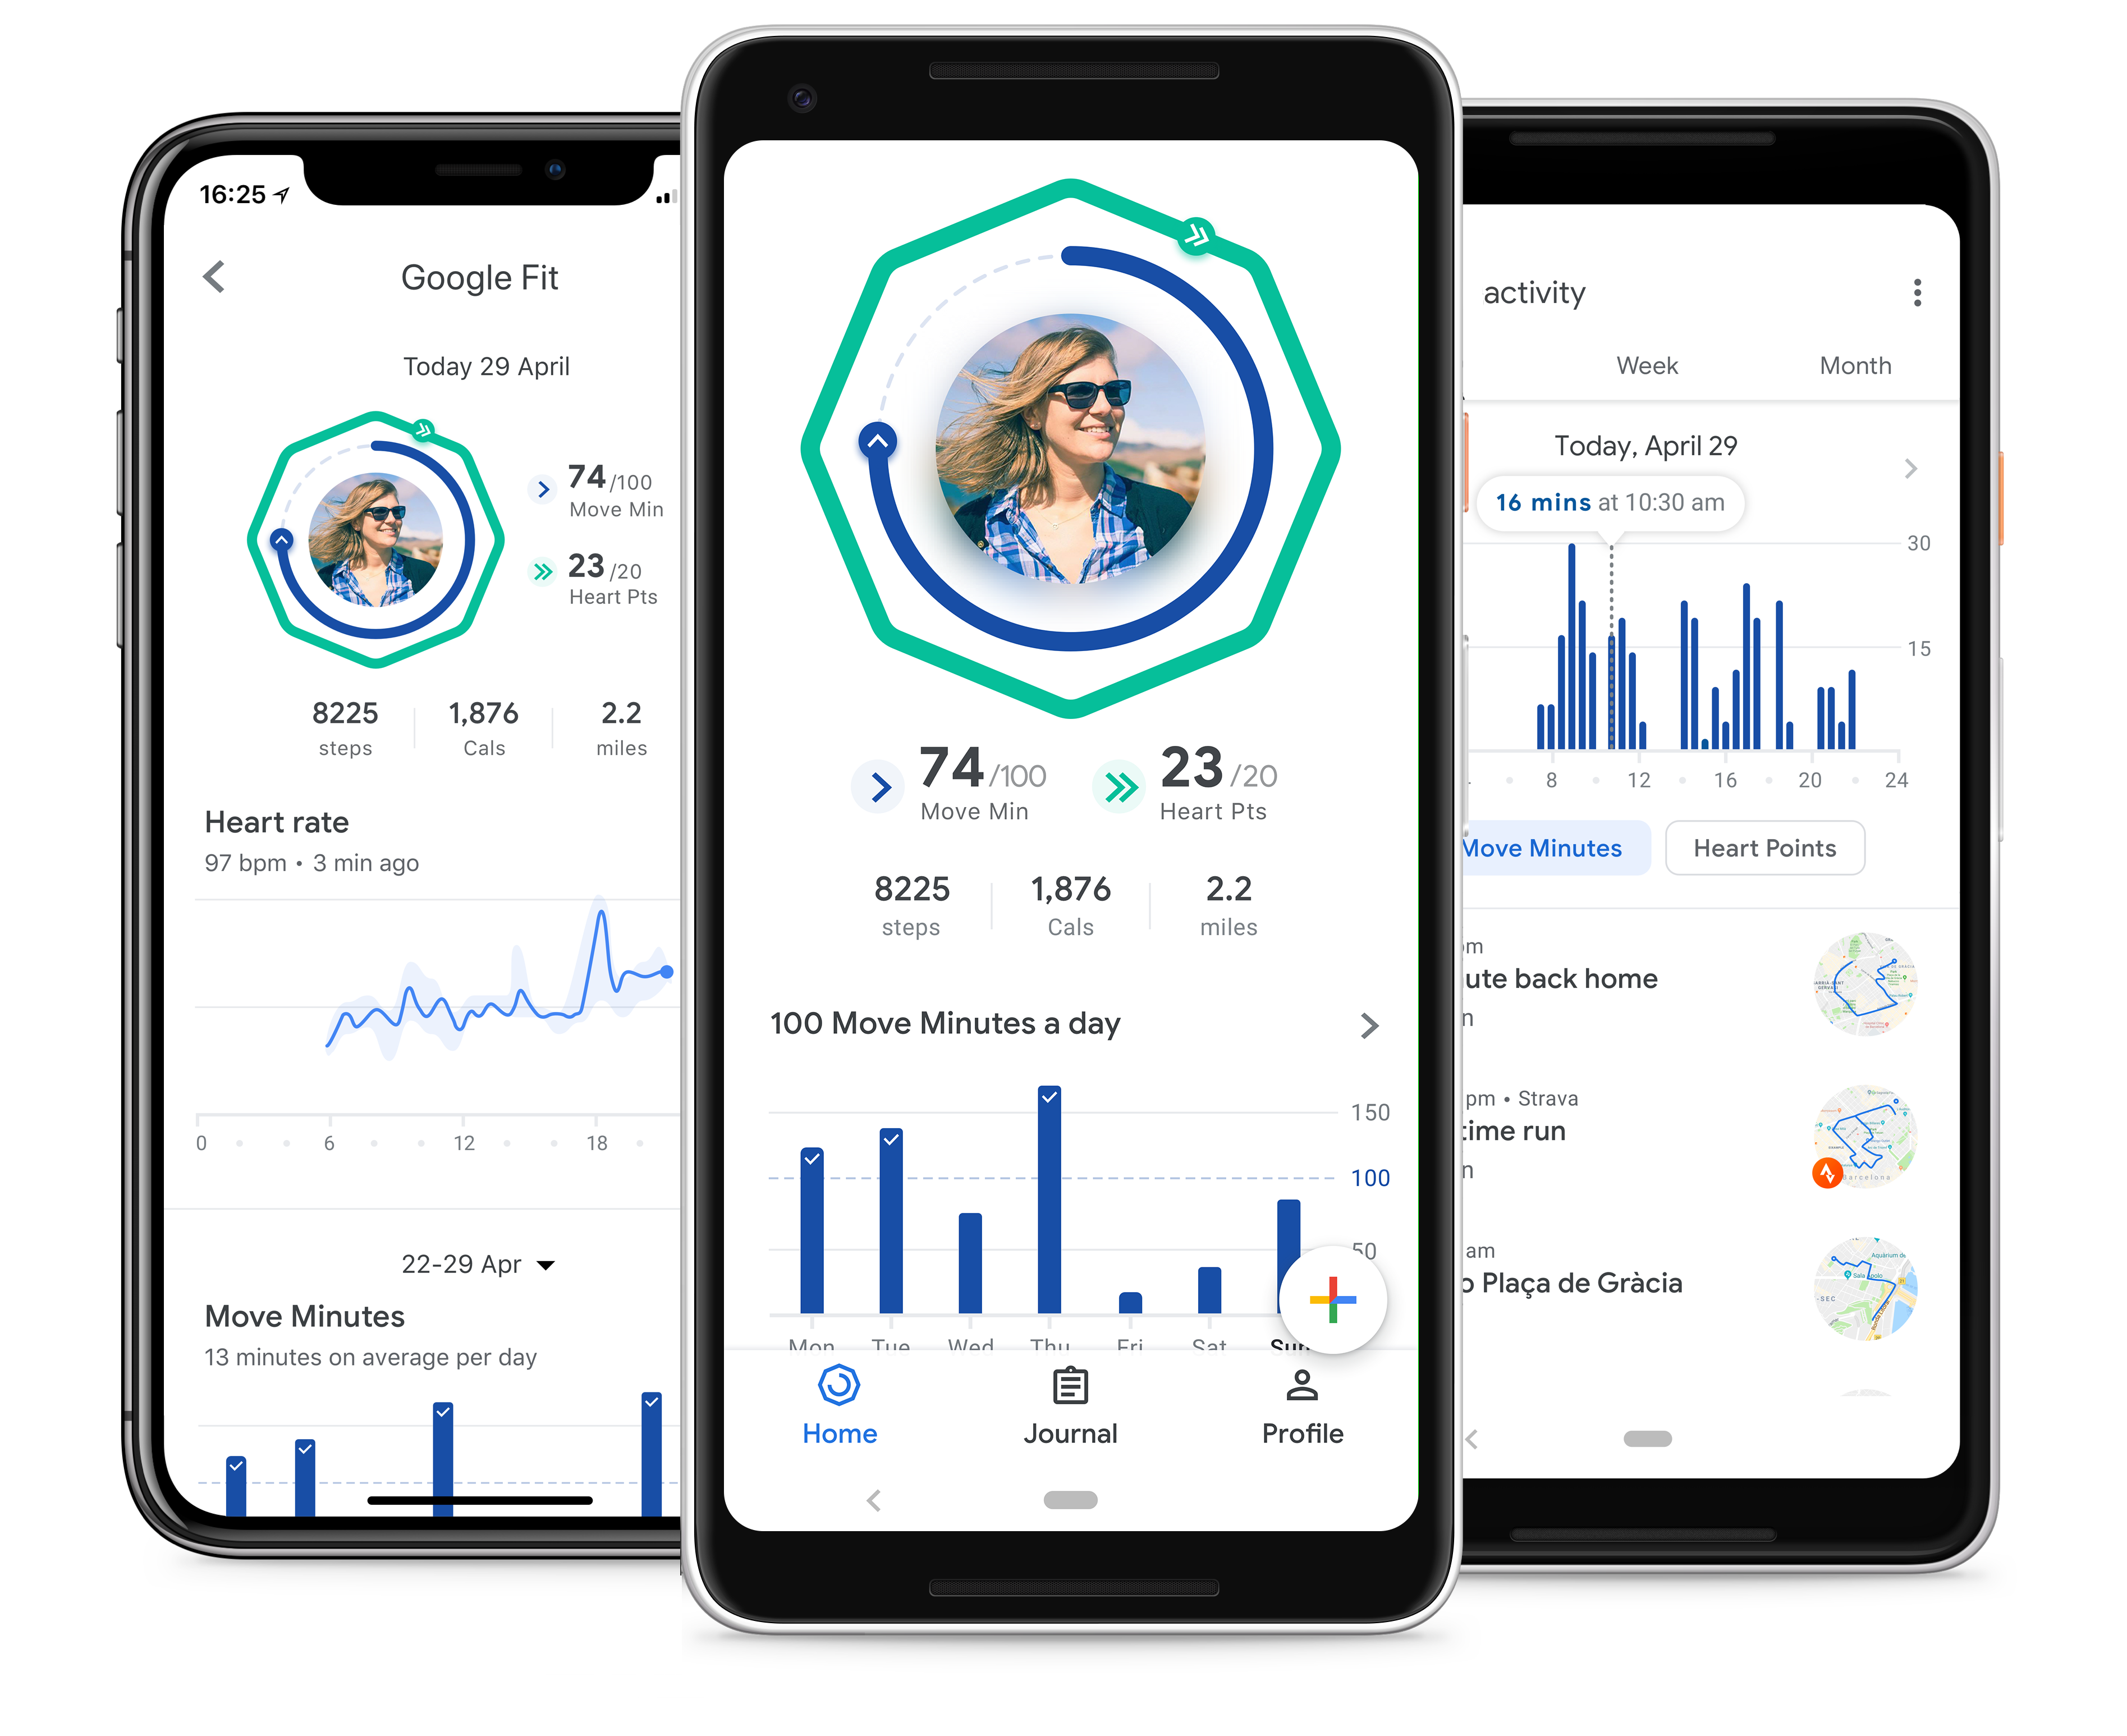 Google Fit adds new tools to entice you to exercise - CNET